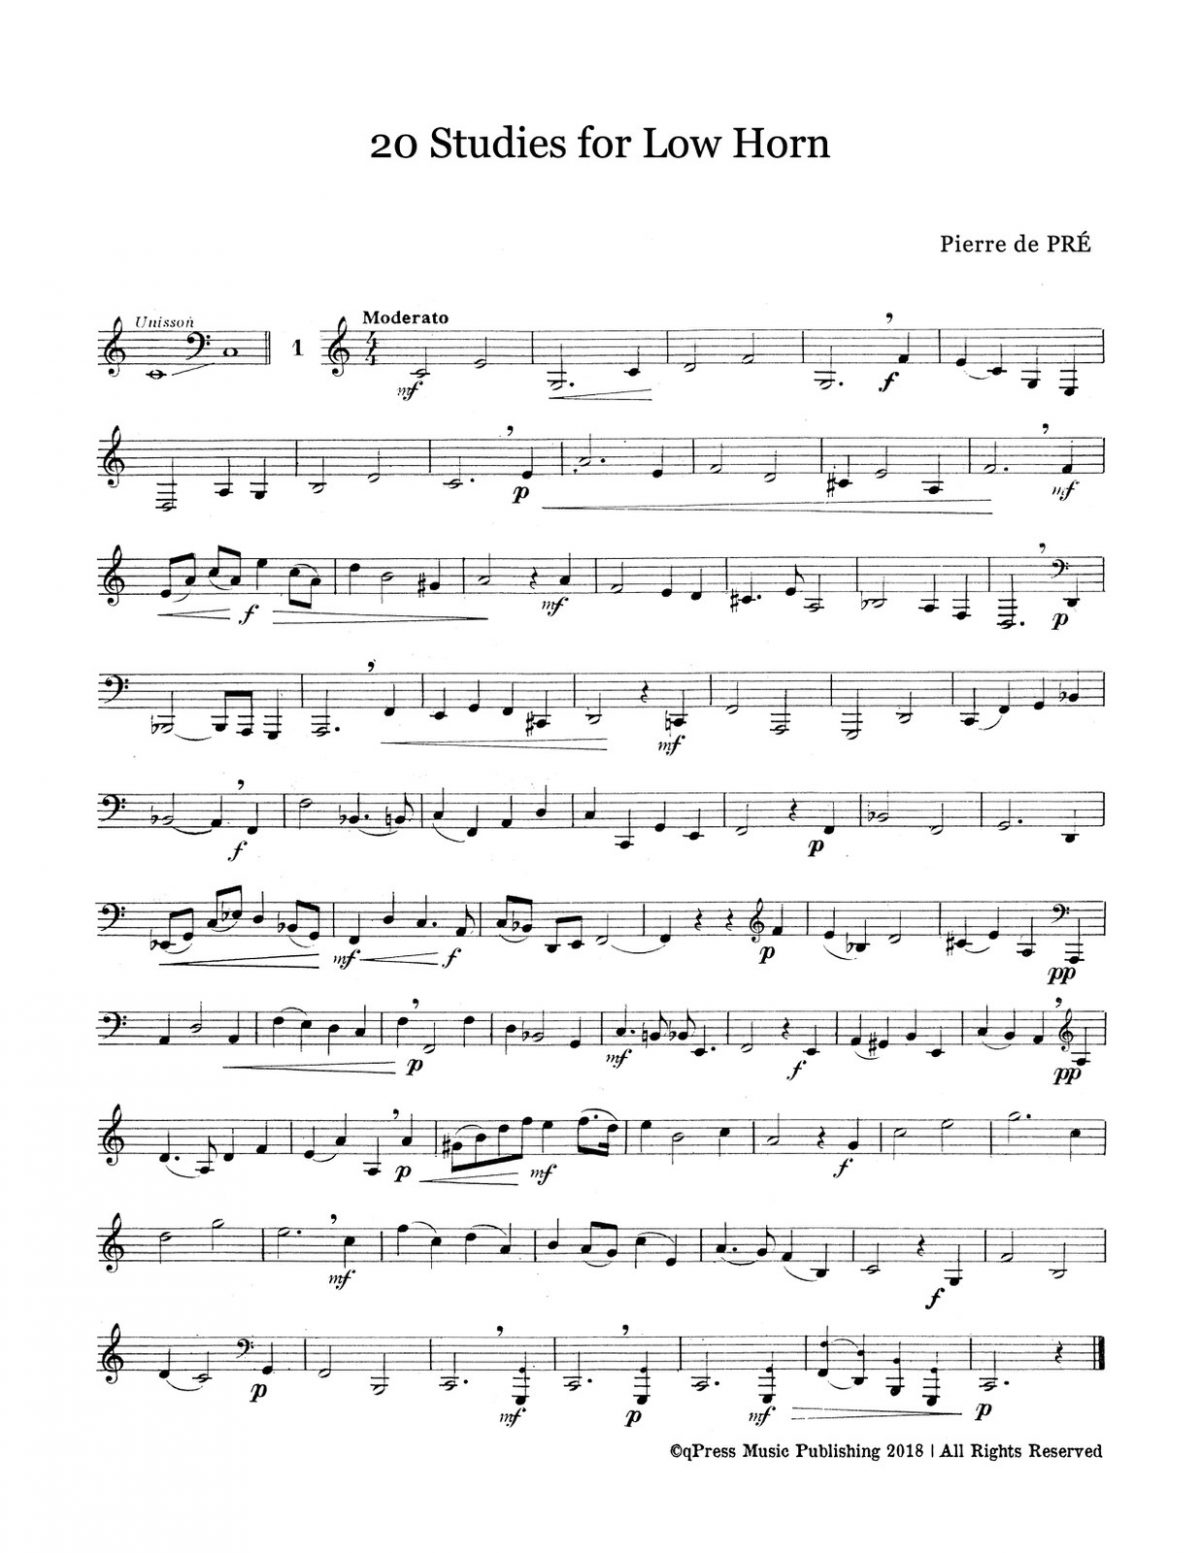 Pre, 20 Studies for Low Horn-p03